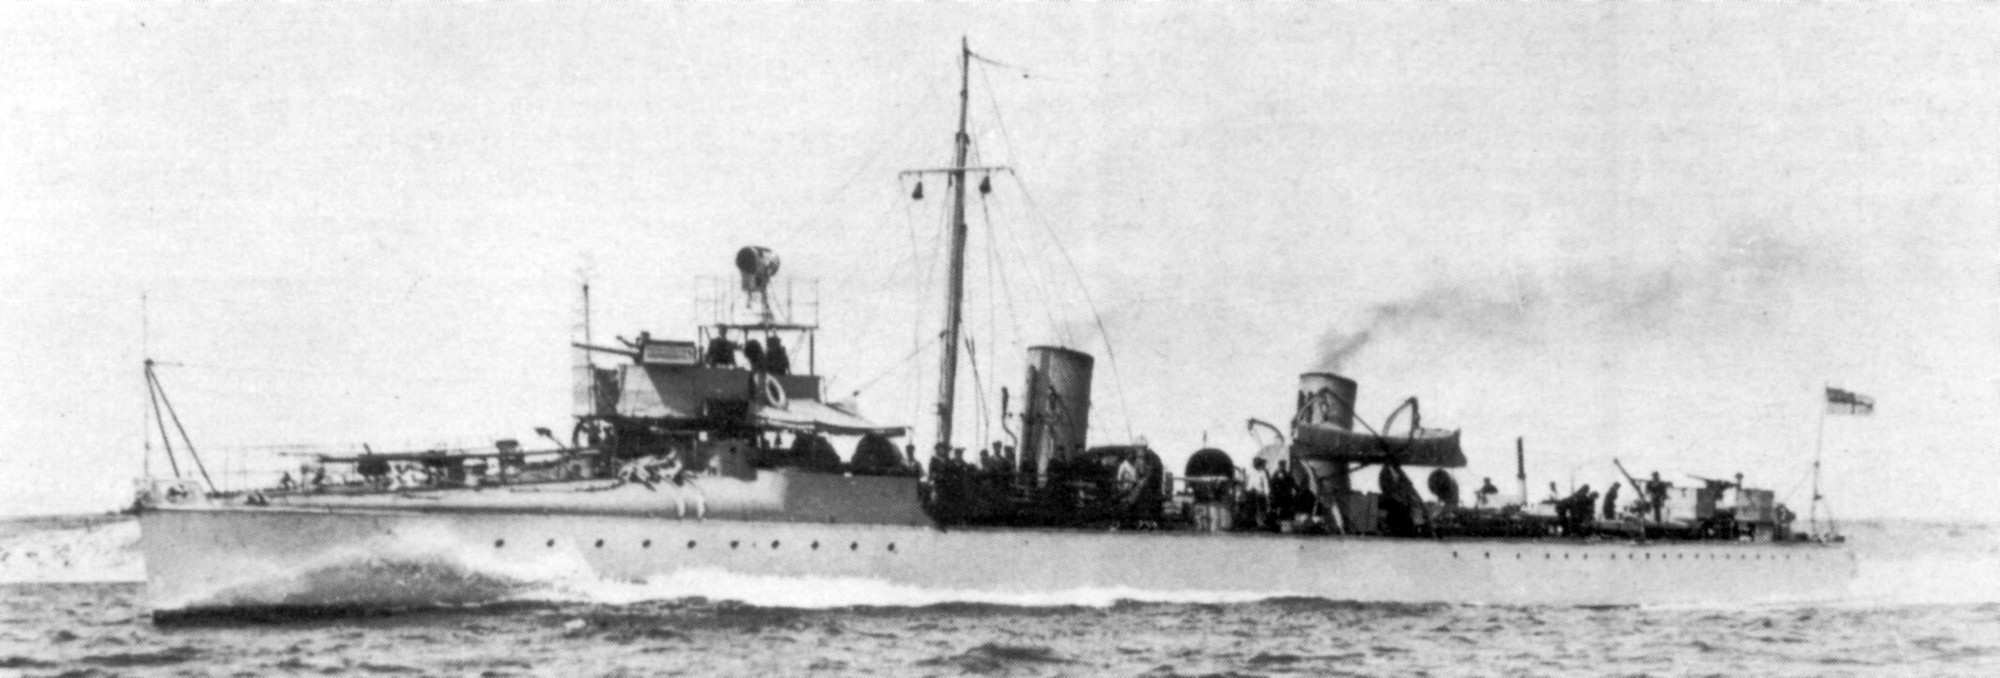 HMS Stag